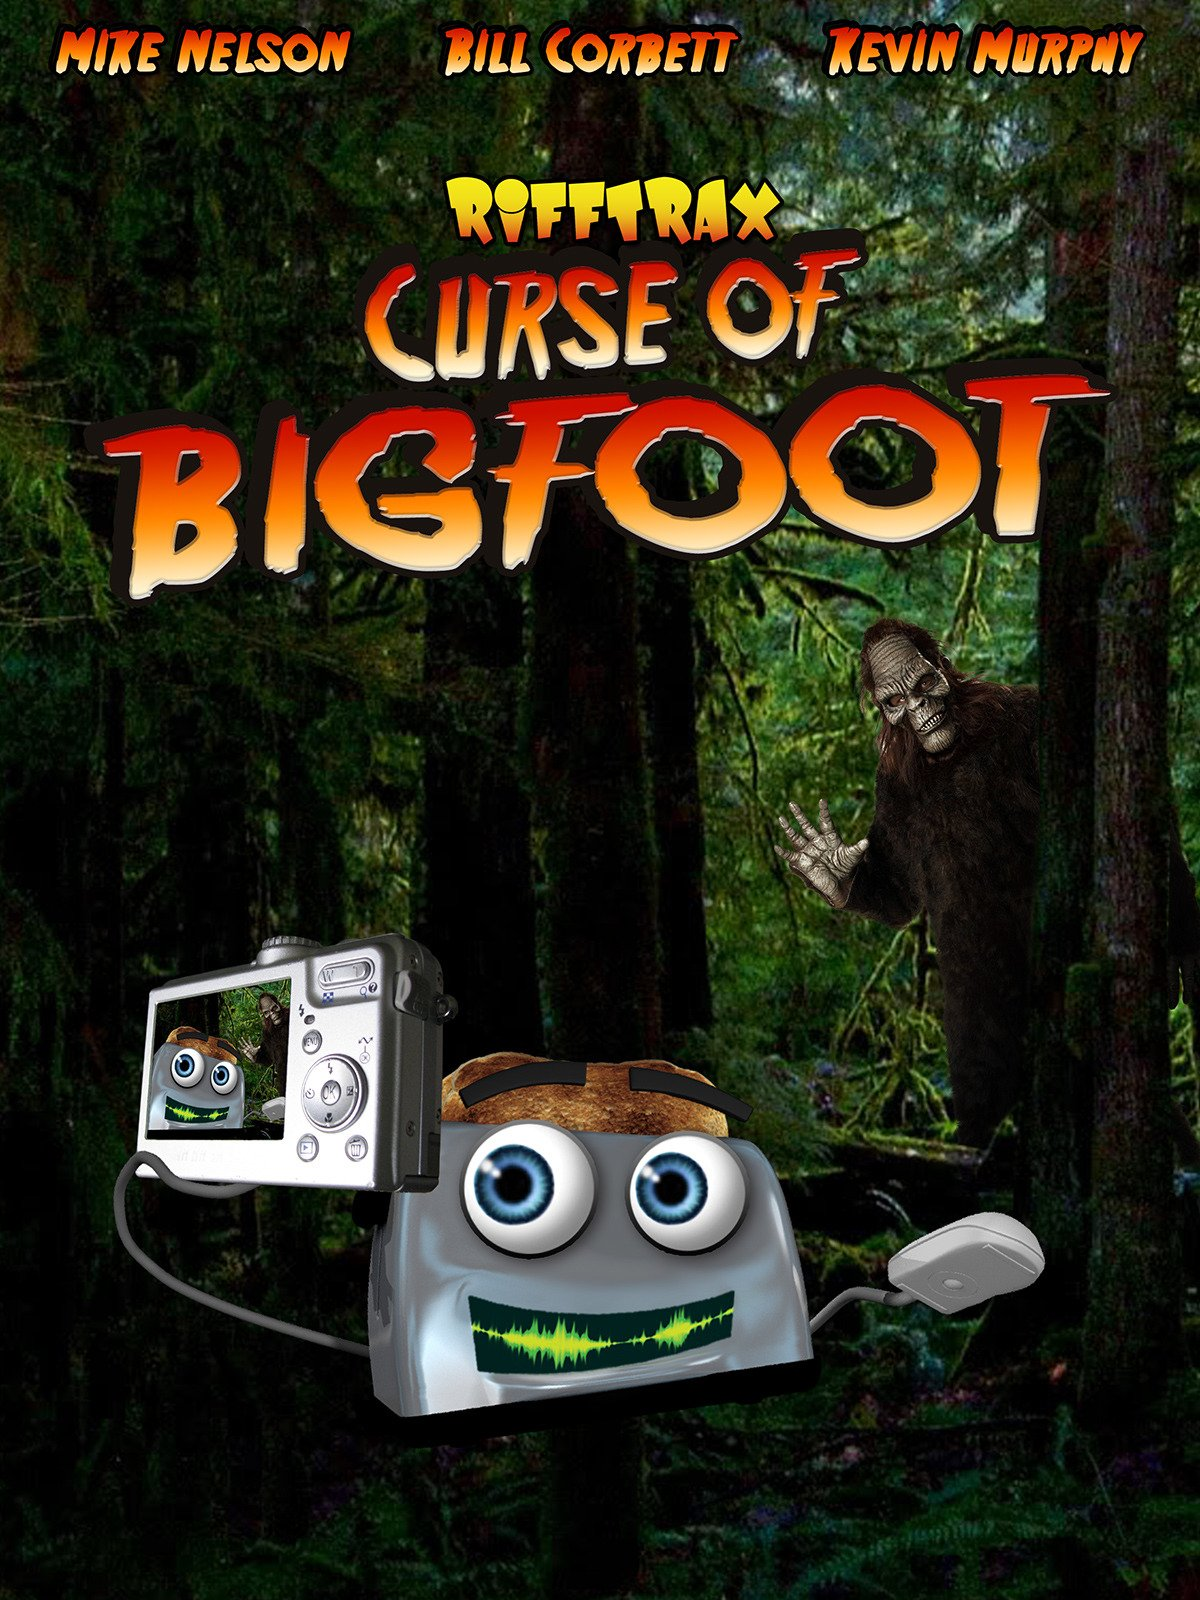 RiffTrax: Curse of Bigfoot